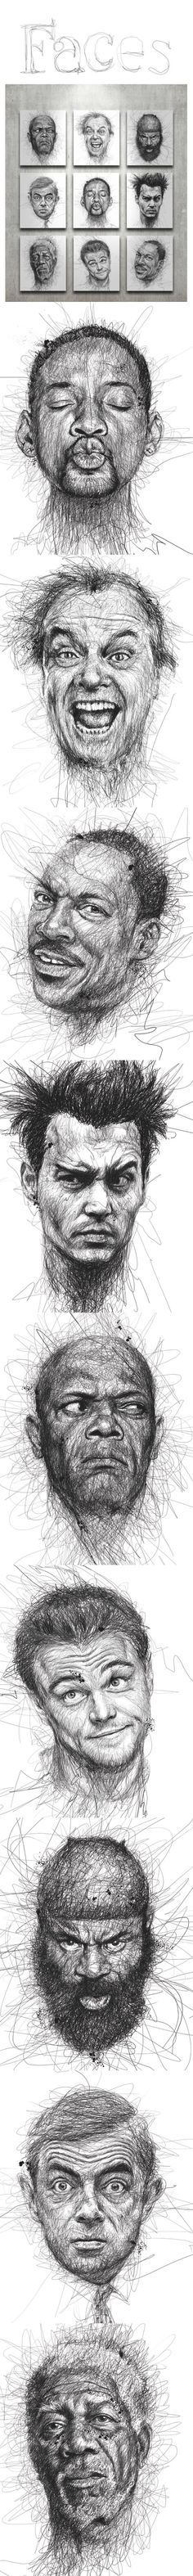 Faces by Vince Low - what a cool way to draw with pen.